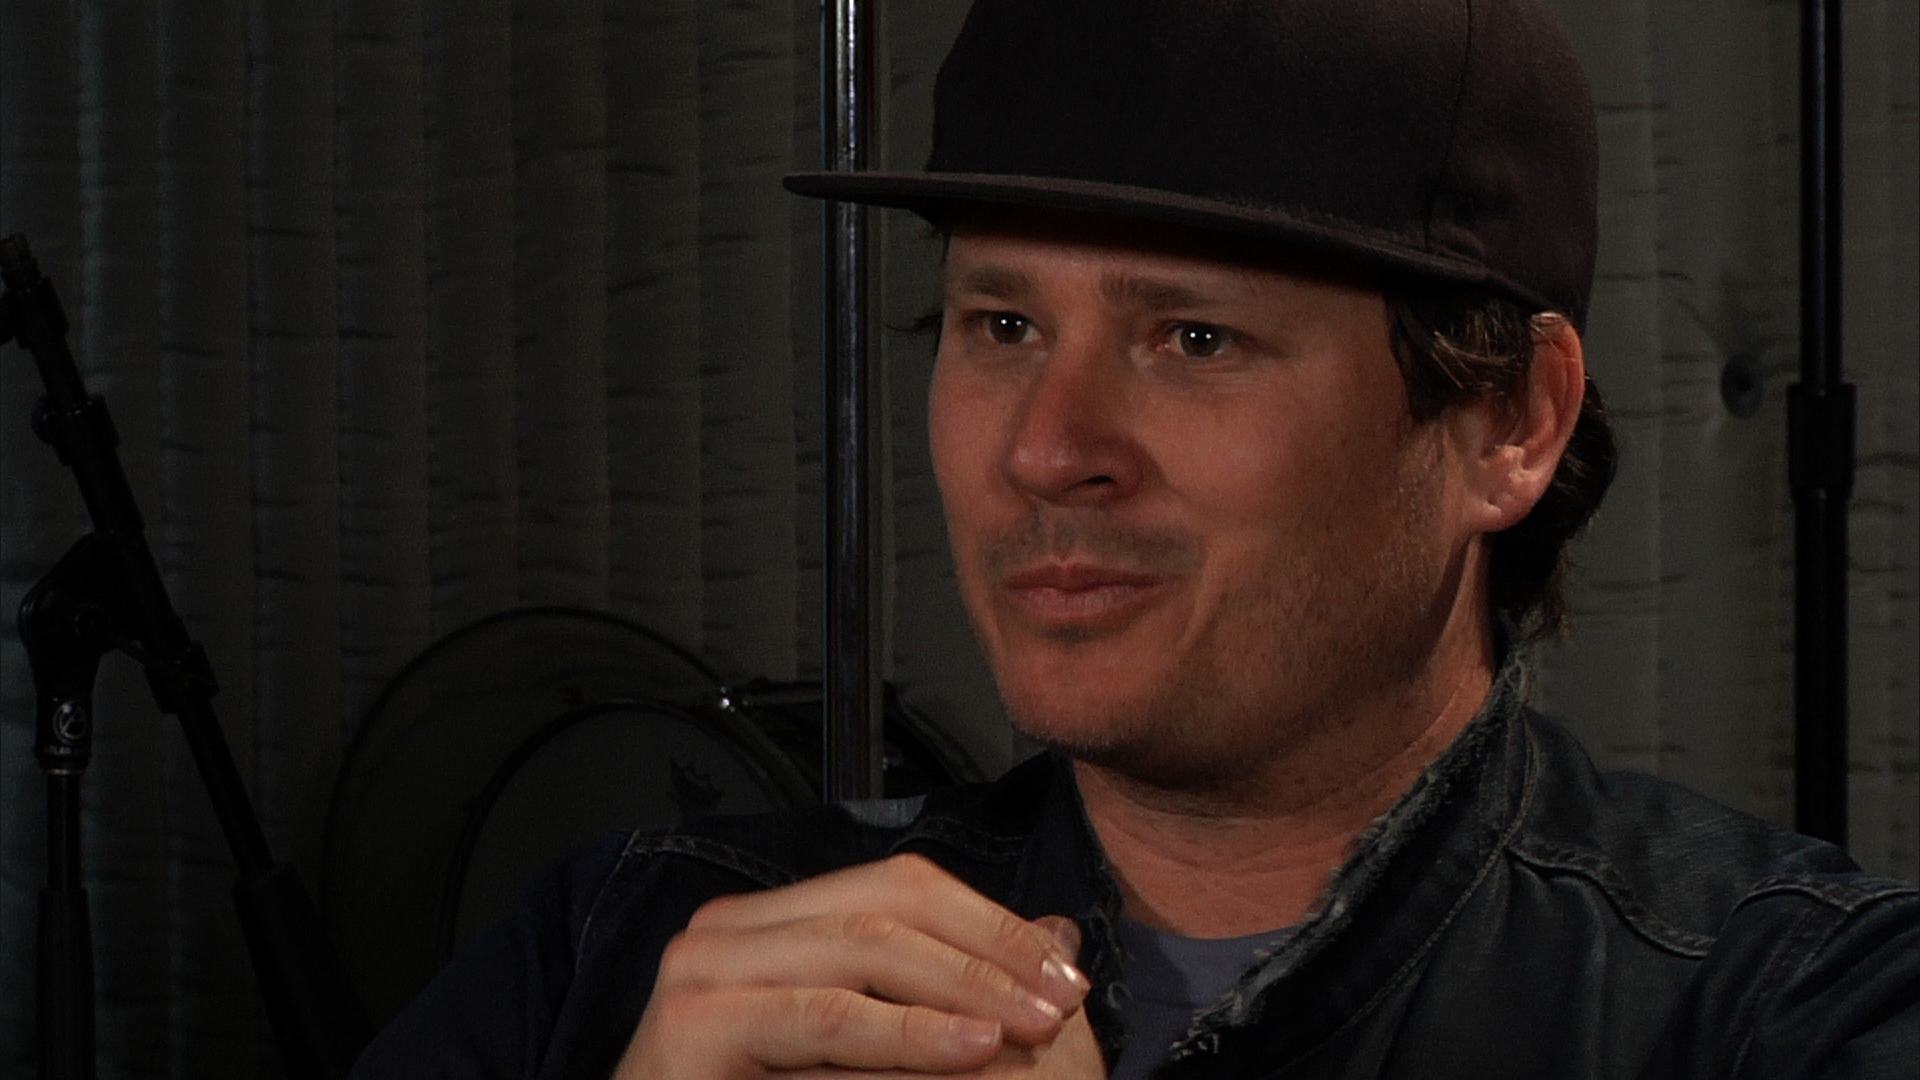 Tom DeLonge. (Credit: Open Minds)